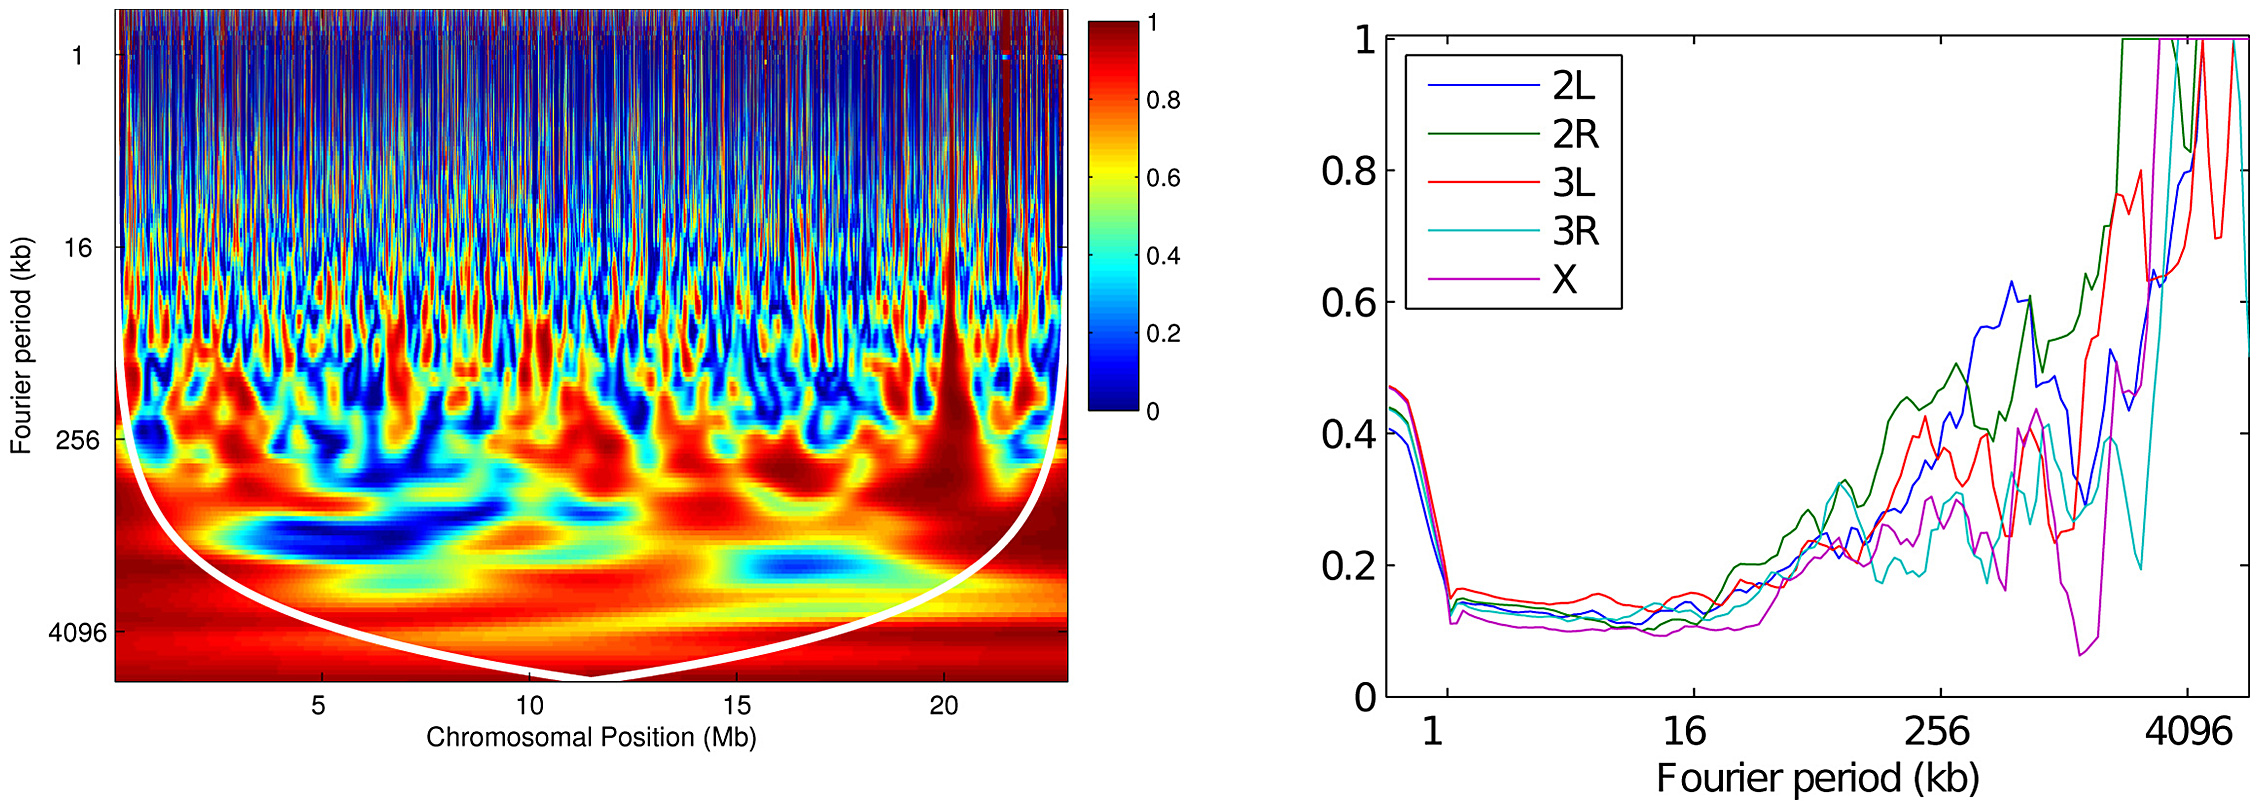 Wavelet coherence analysis comparing RAL against RG.